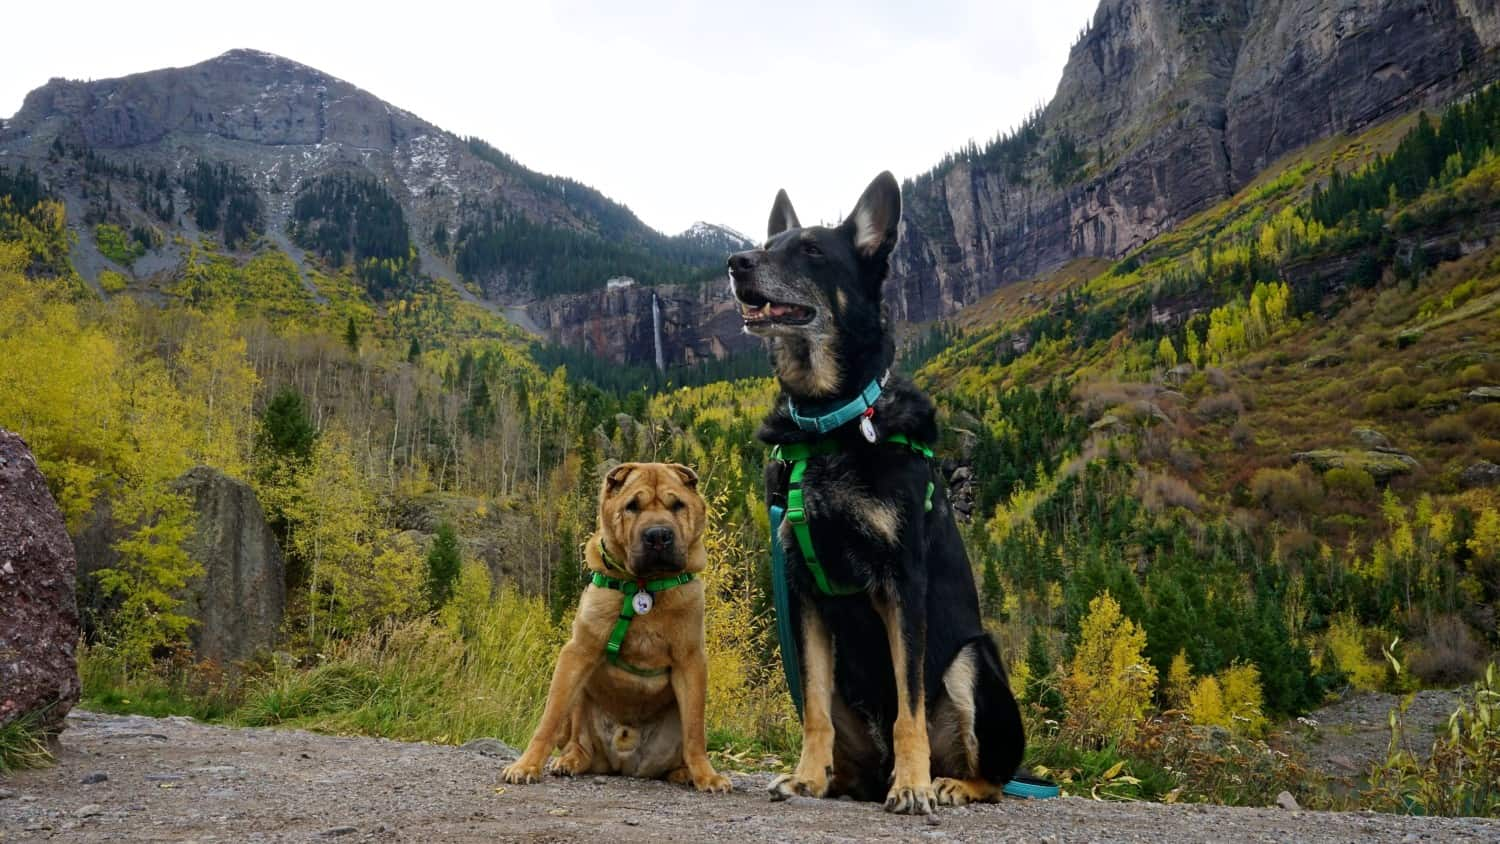 Pet Friendly Telluride, Colorado - A Rocky Mountain Adventure With Dogs